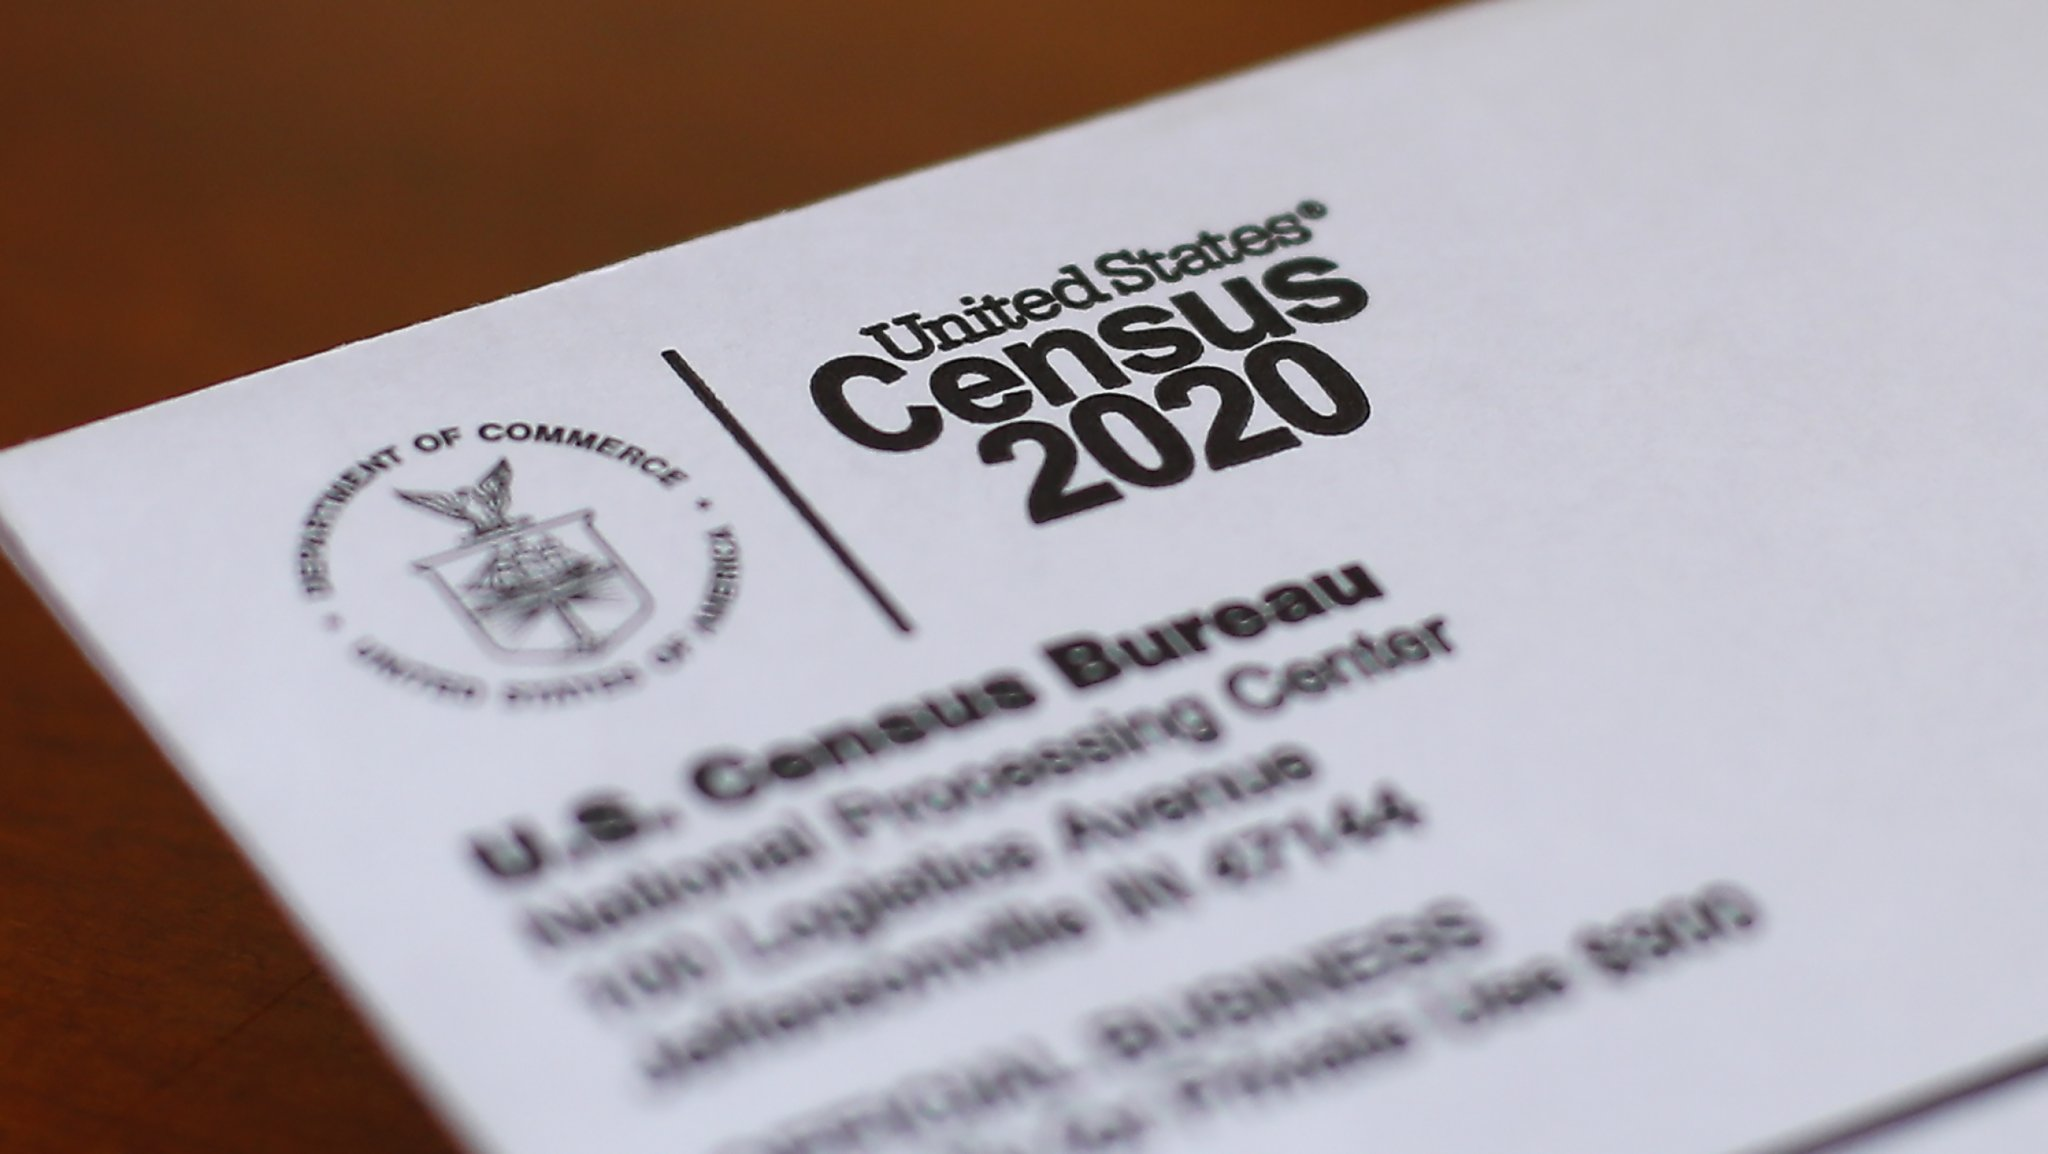 Federal judge in San Jose blocks White House order to wrap up census count early